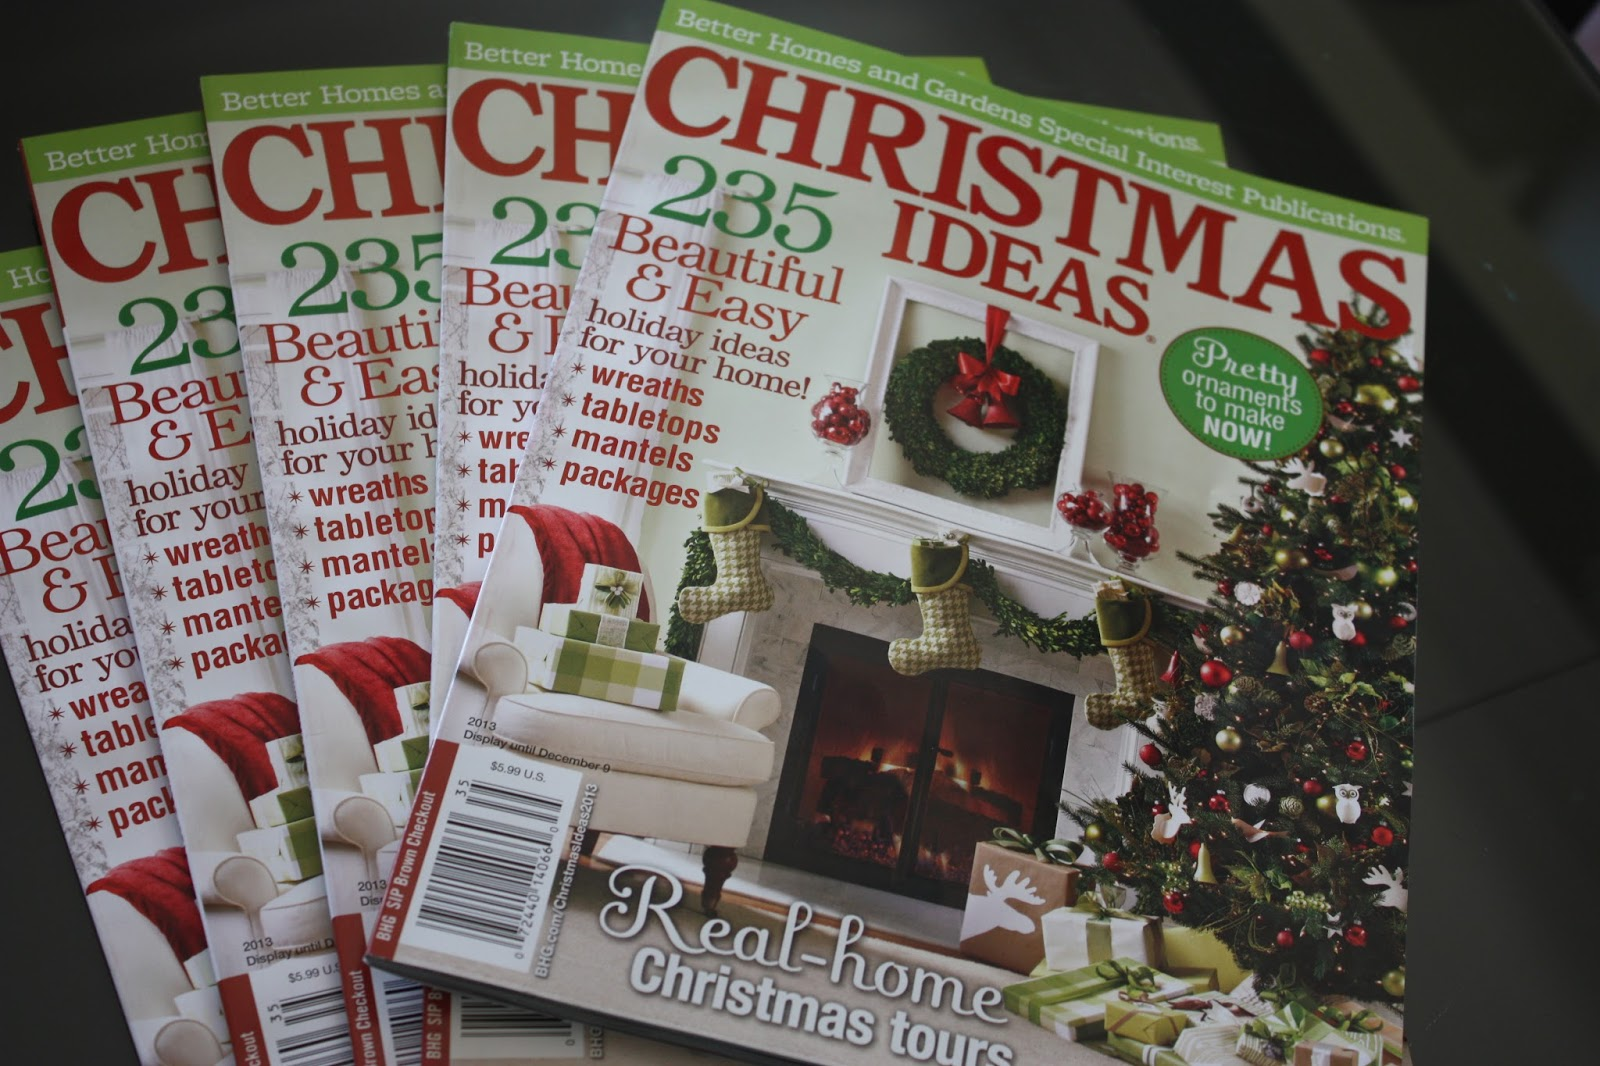 Better Homes And Gardens Christmas Decorating Ideas - Christmas decorating ideas better homes and gardens myideasbedroom